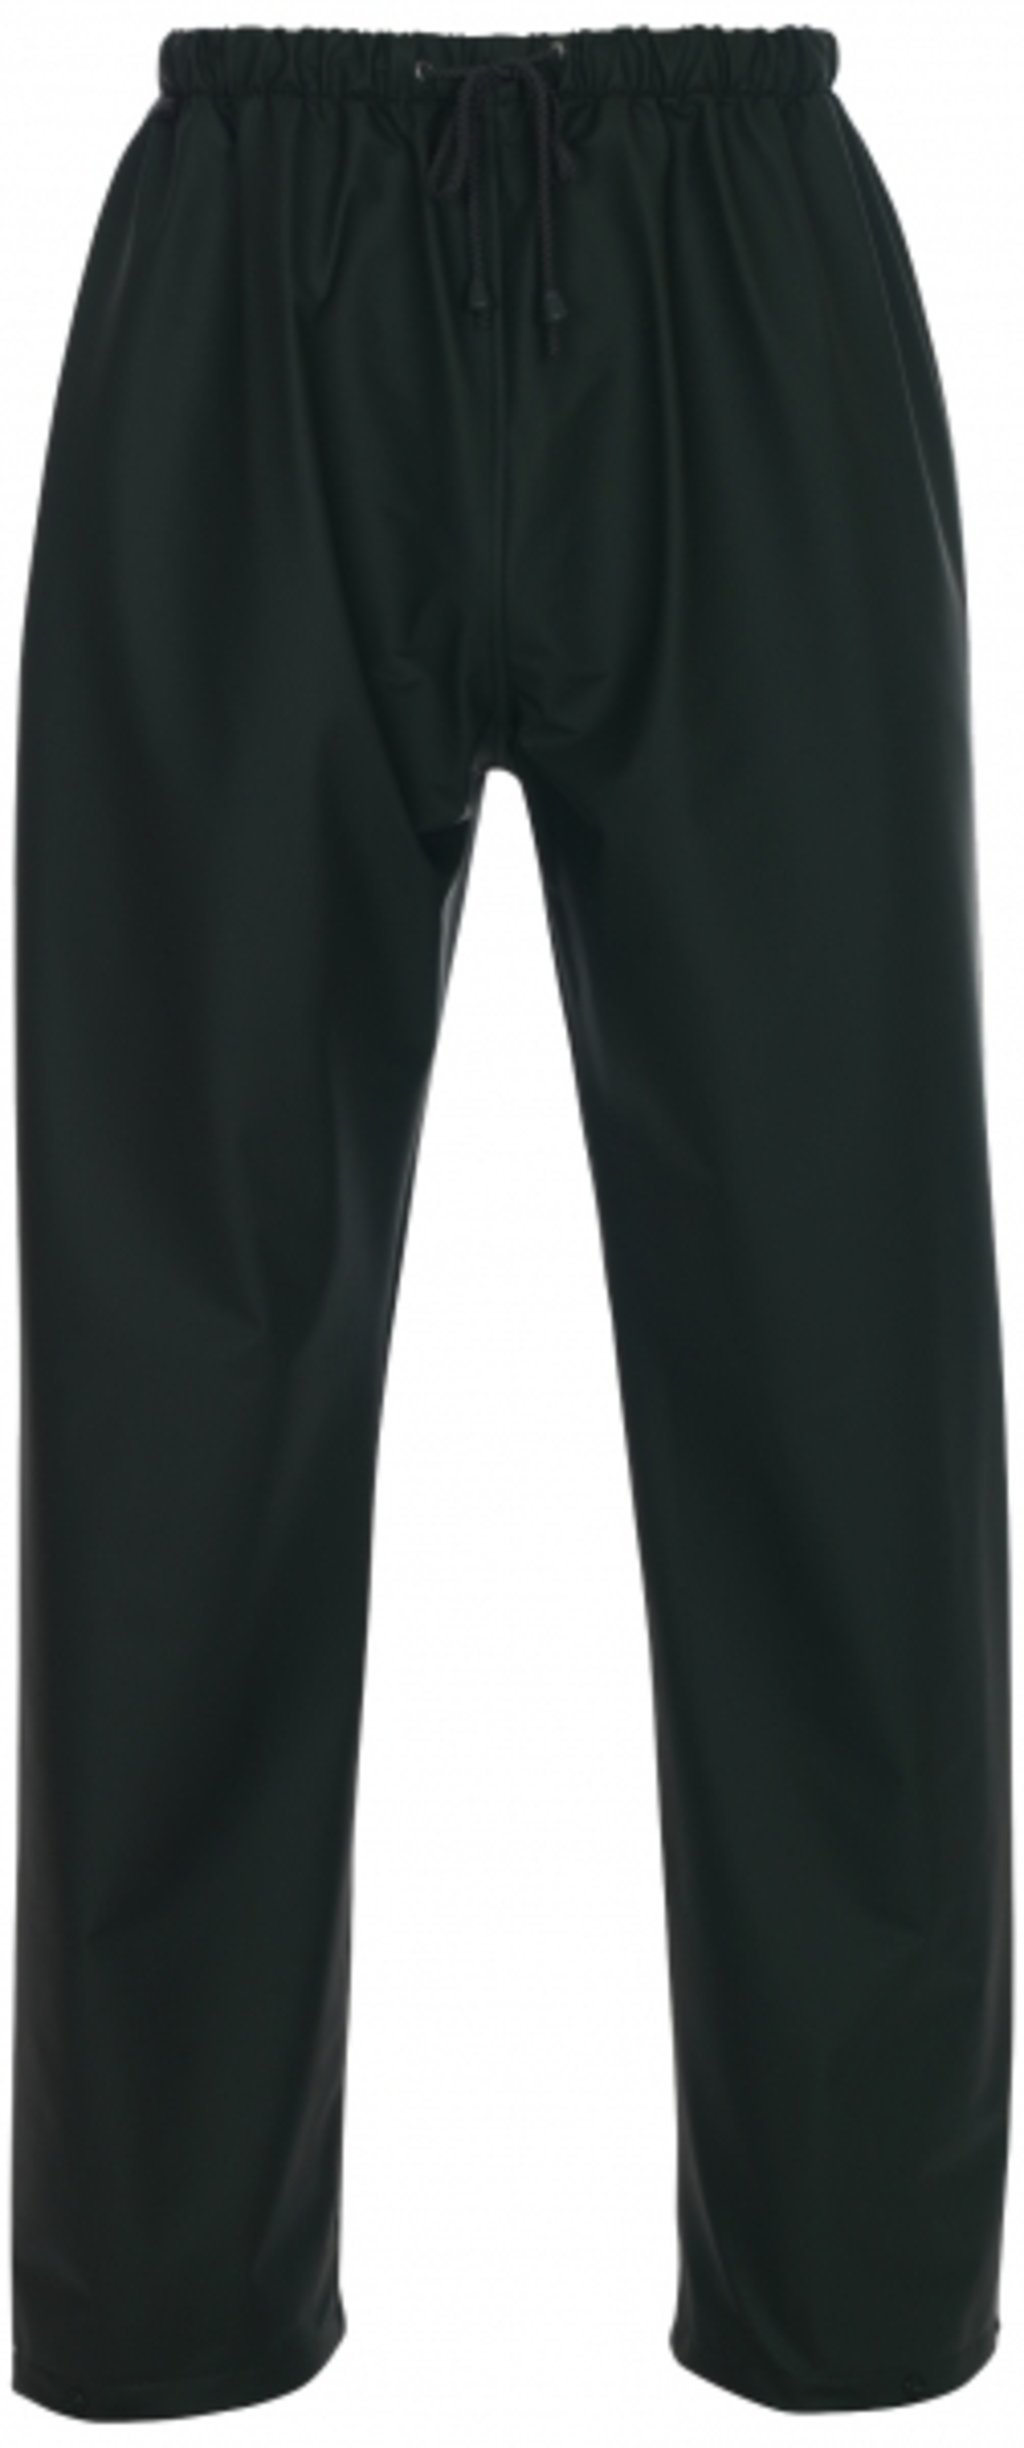 Mascot Aqua Riverton rain trousers, Green